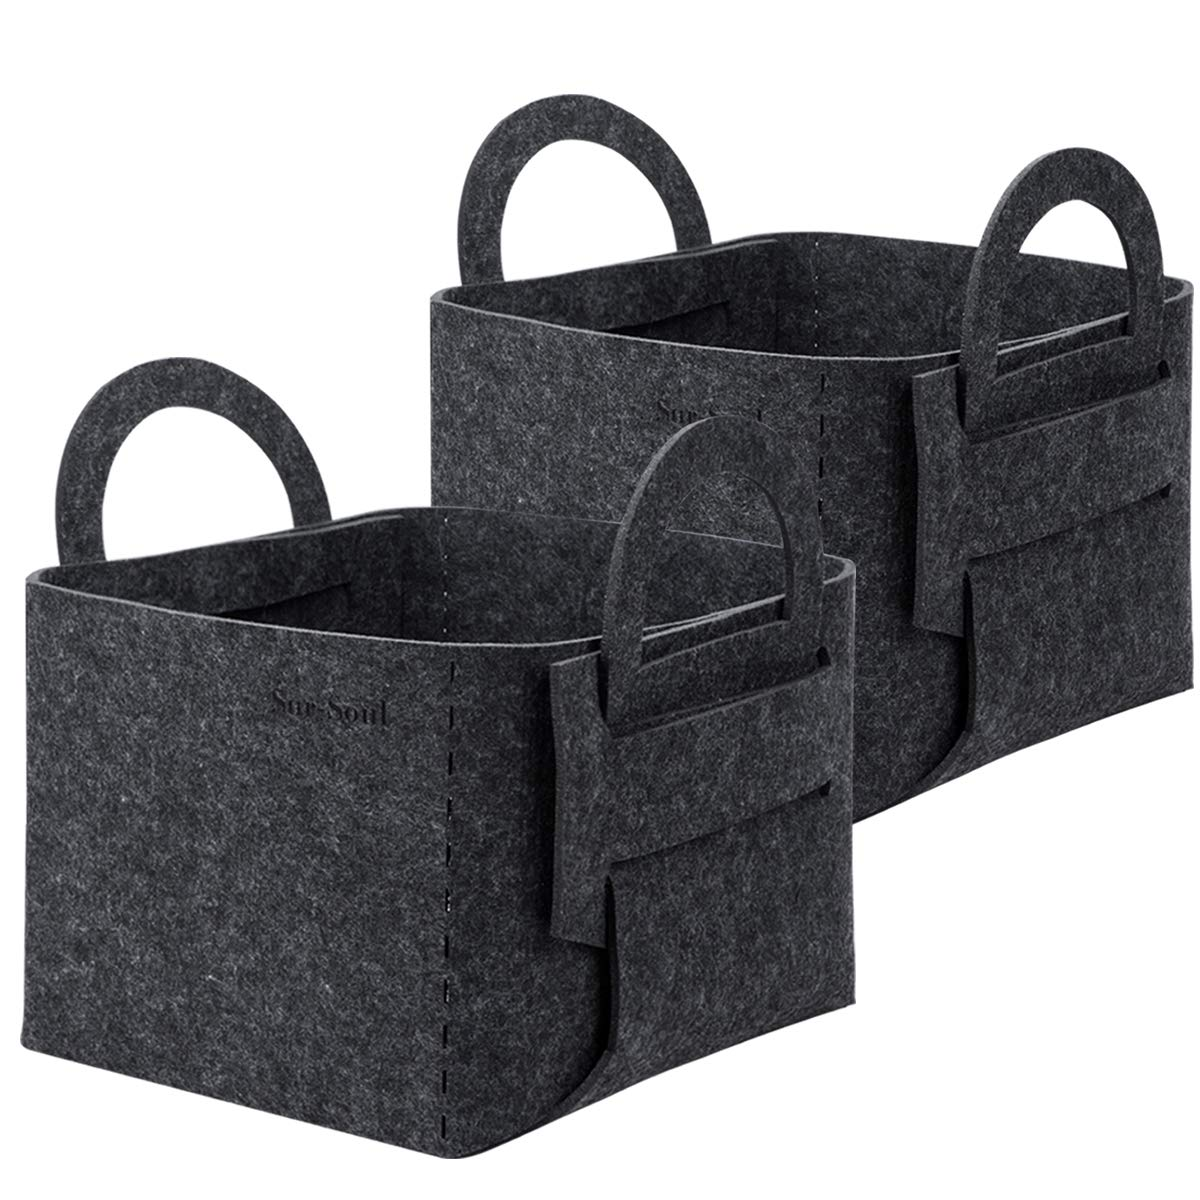 SurSoul Storage Baskets, Felt Storage Bins for Clothes, Toys, Books, Collapsible Laundry Baskets with Handle, Storage Solution for Office, Bedroom, Shelf, Closet,2 Pack by SurSoul